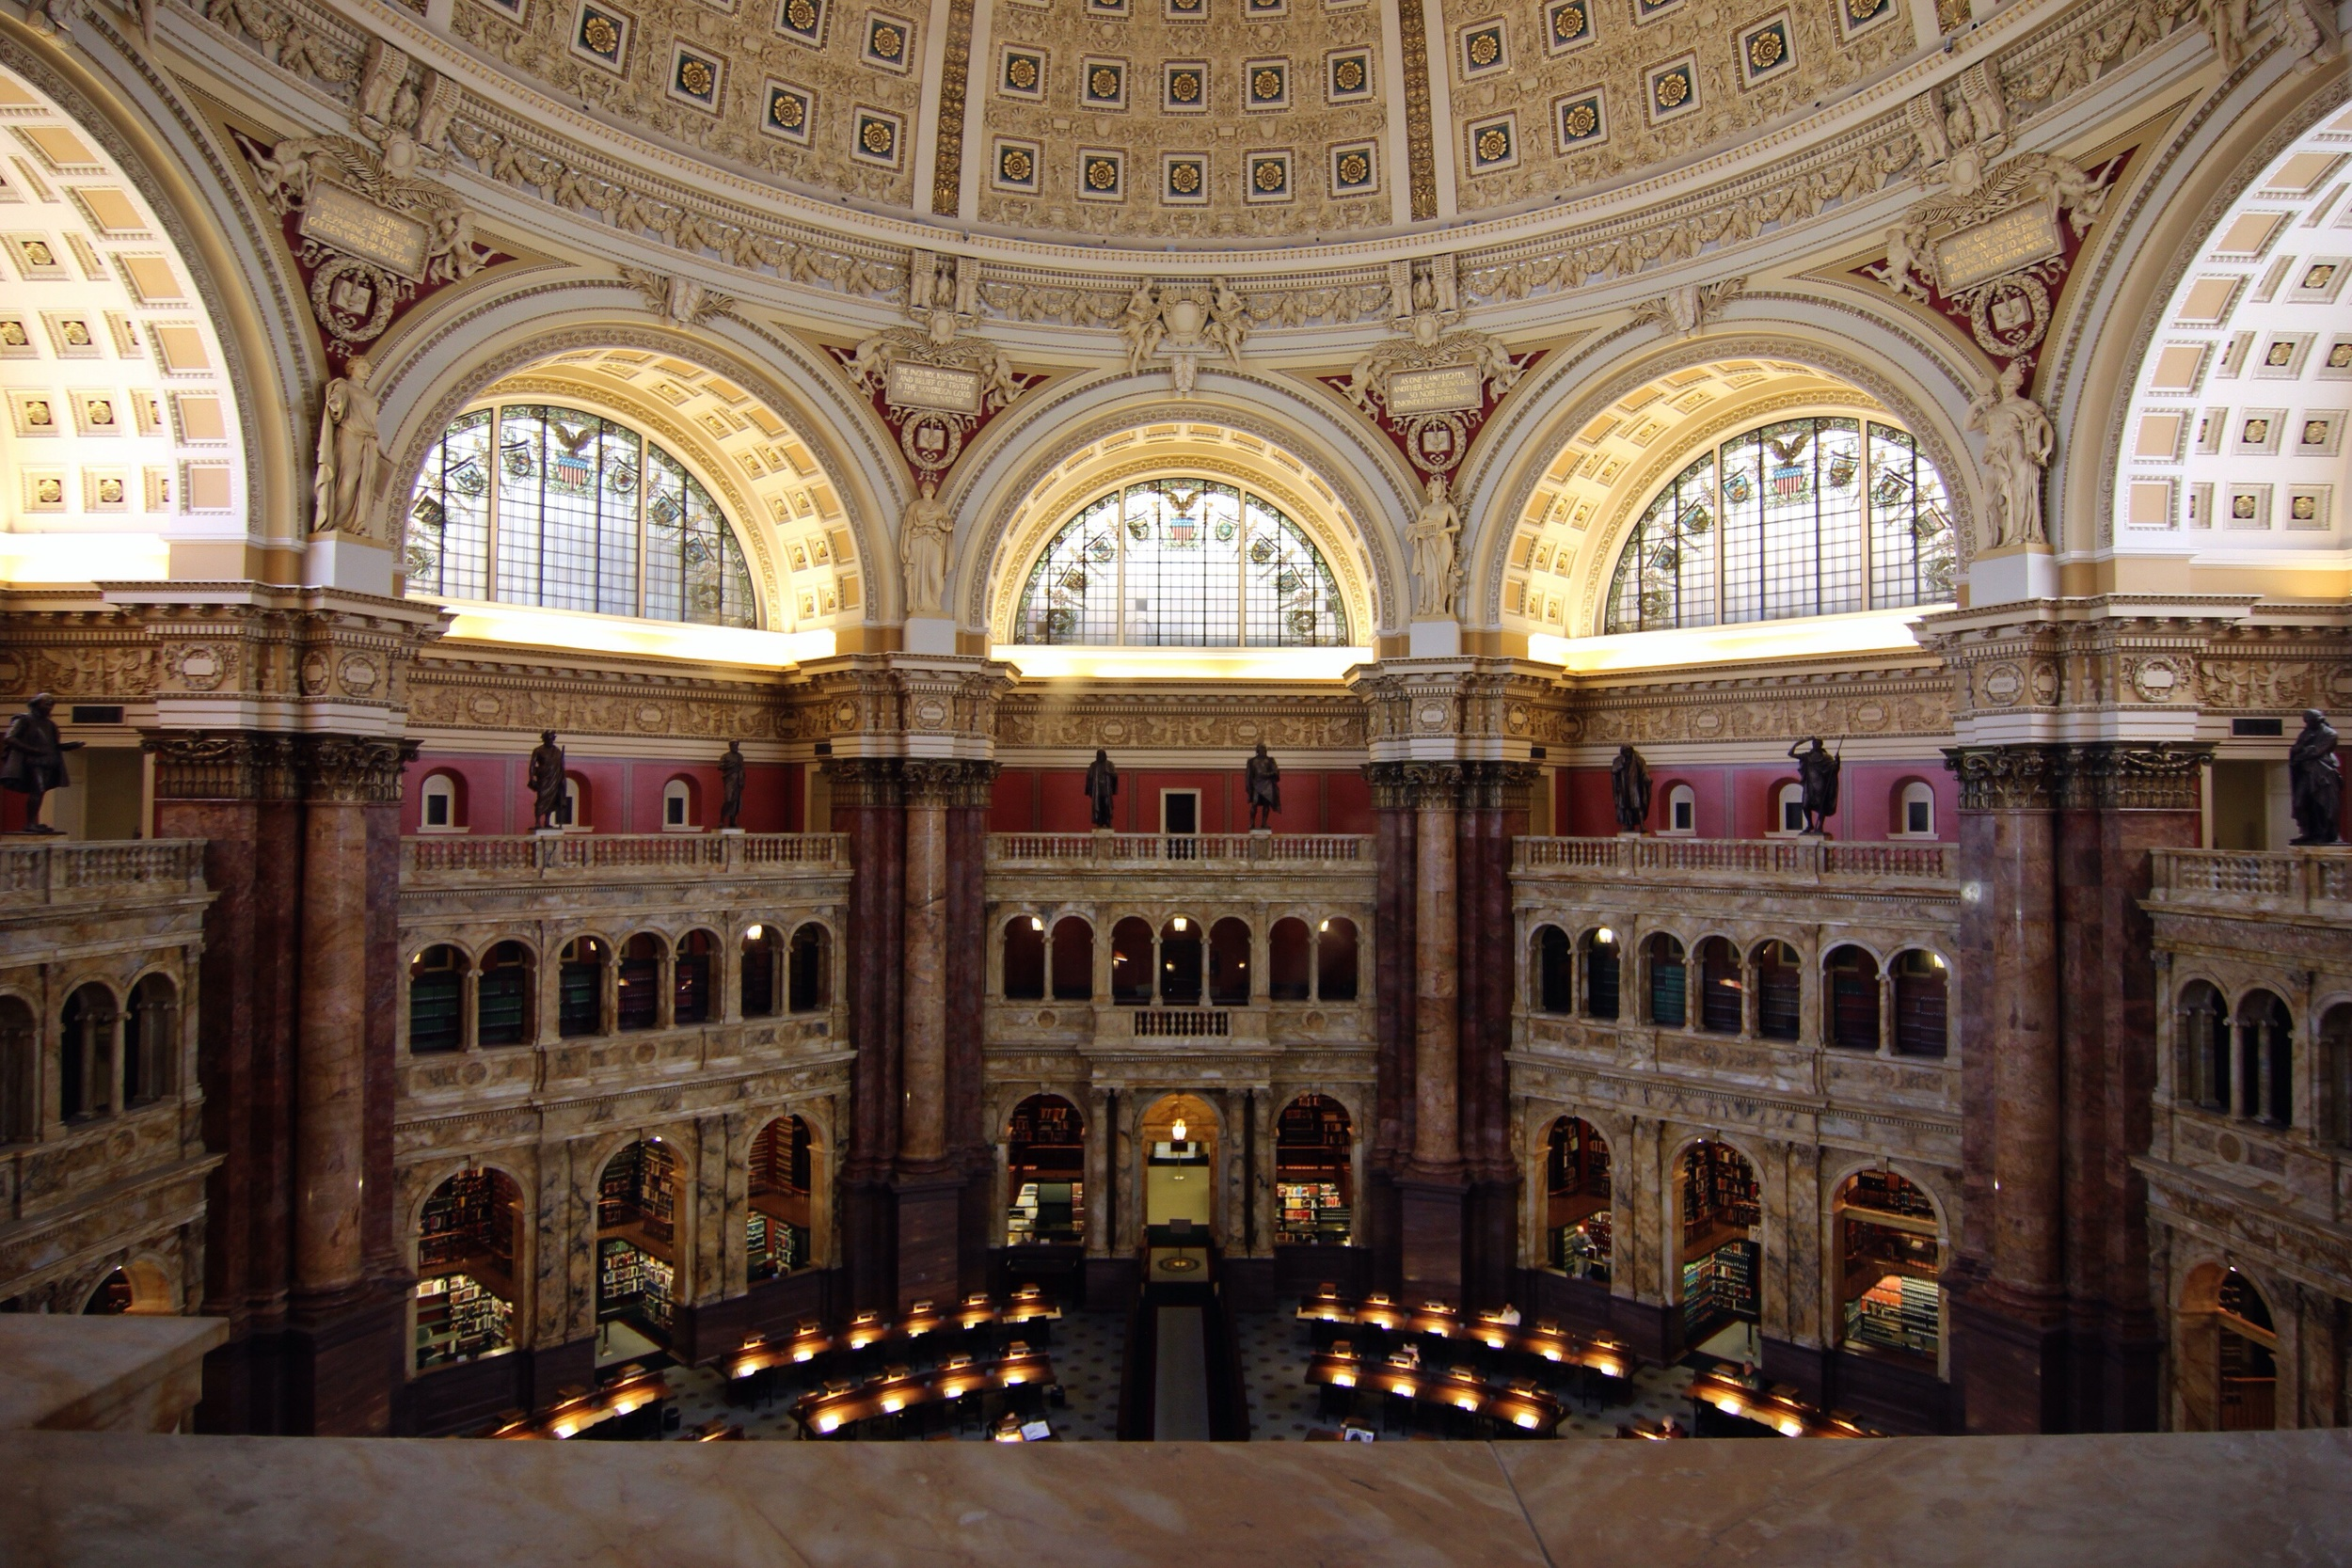 The Reading Room in the Library of Congress.